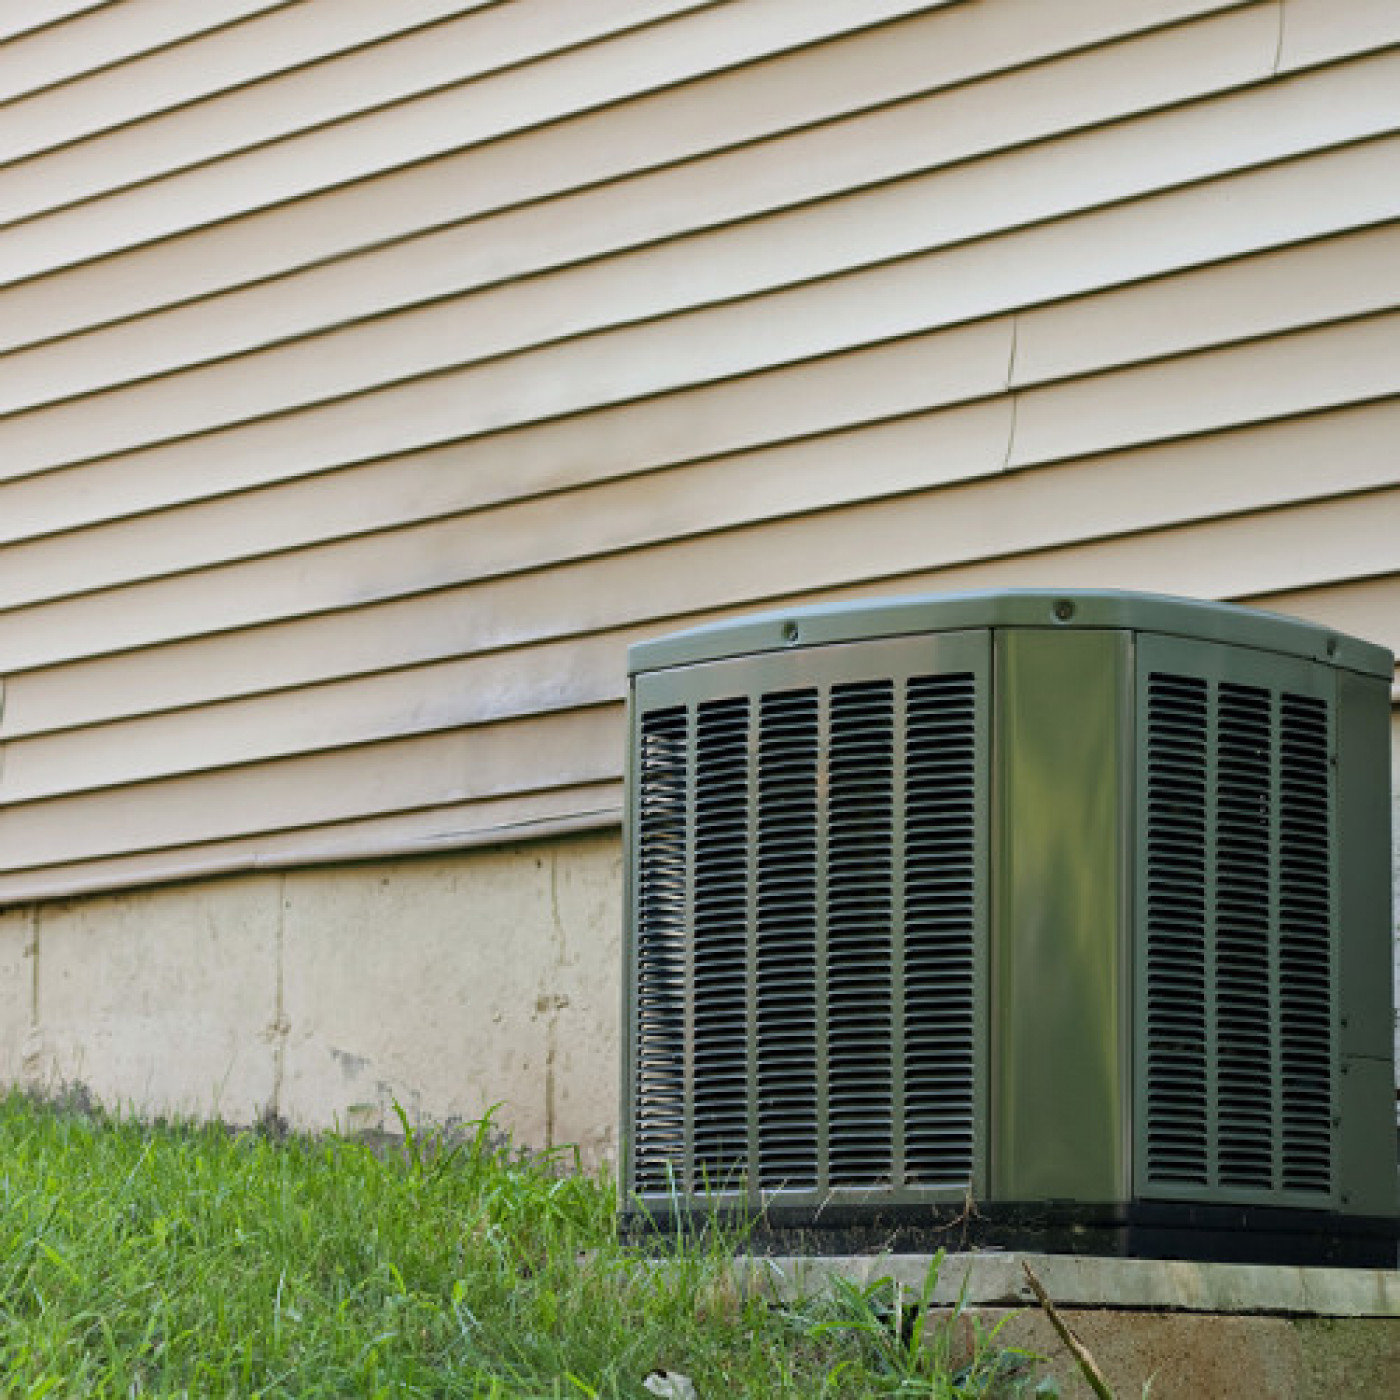 Thinking About Leasing an HVAC? Think Again!